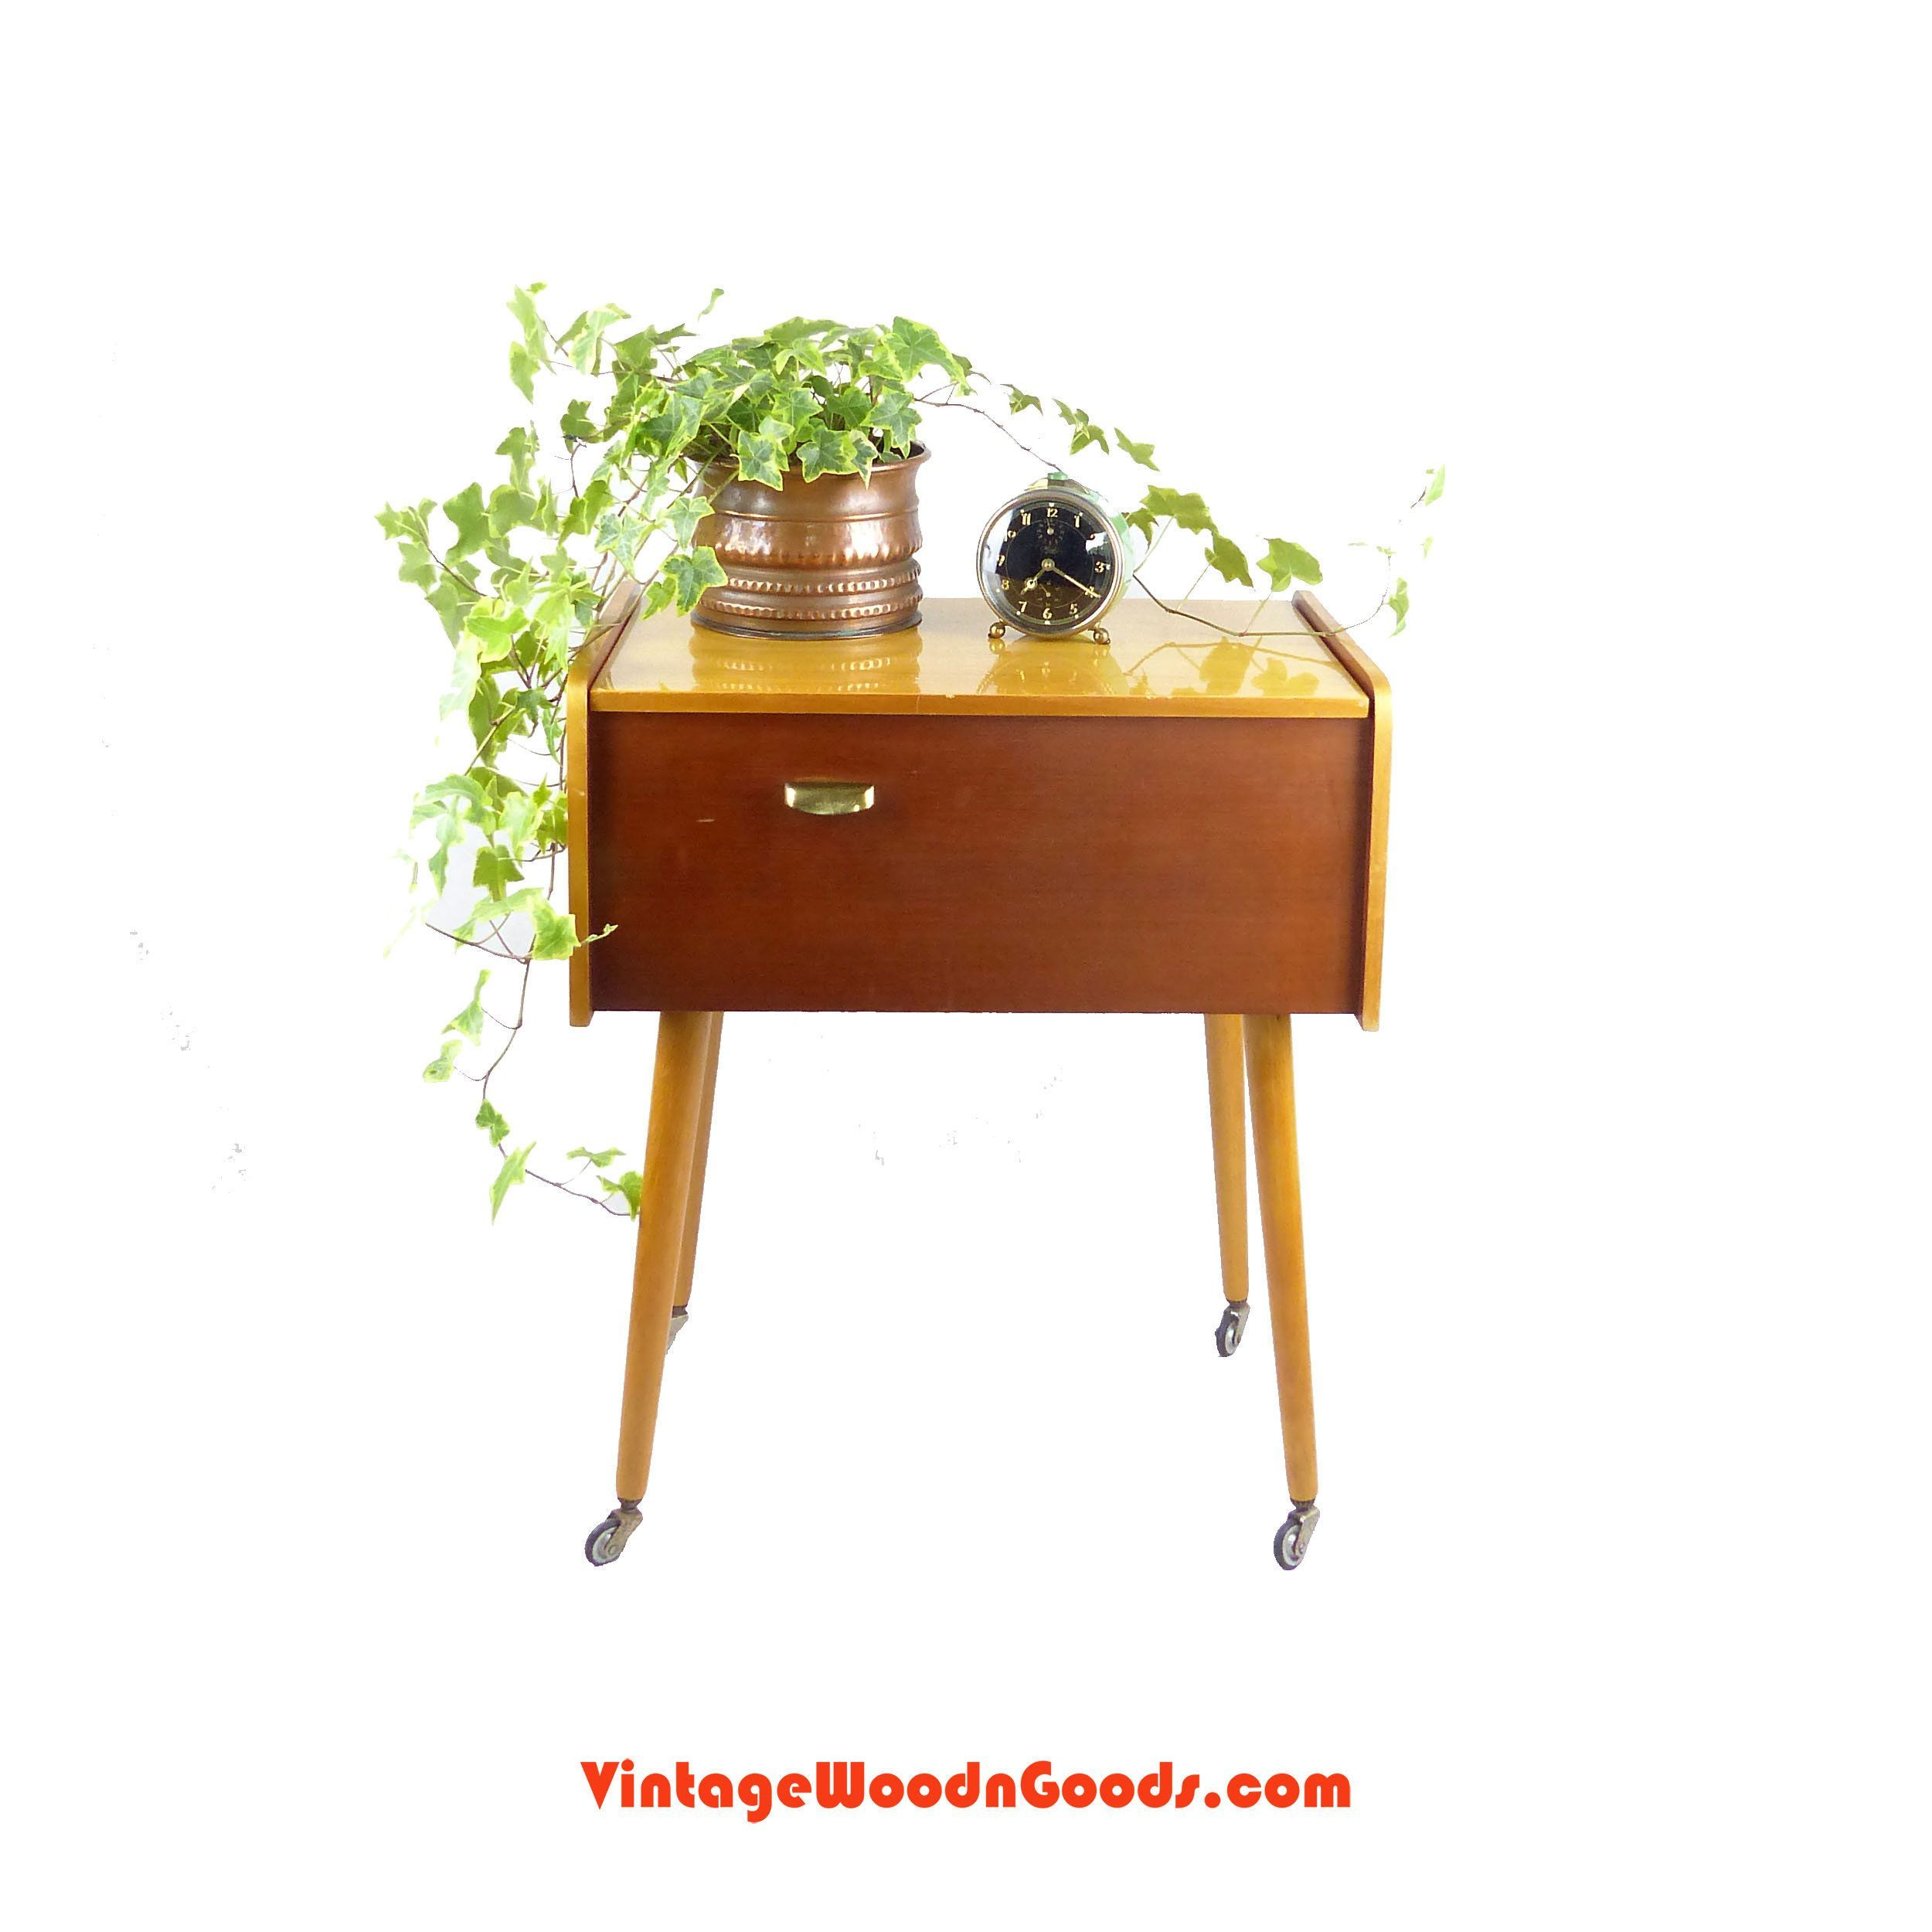 Vintage 60s wooden BICOLOR Side Table or SEWING BOX on feet whith wheels, midcentury Coffee Table, organizer jewelry box Knick Knack storage #knickknack Vintage 60s wooden BICOLOR Side Table or SEWING BOX on feet whith wheels, midcentury Coffee Table, organizer jewelry box Knick Knack storage by VintageWoodnGoods on Etsy #knickknack